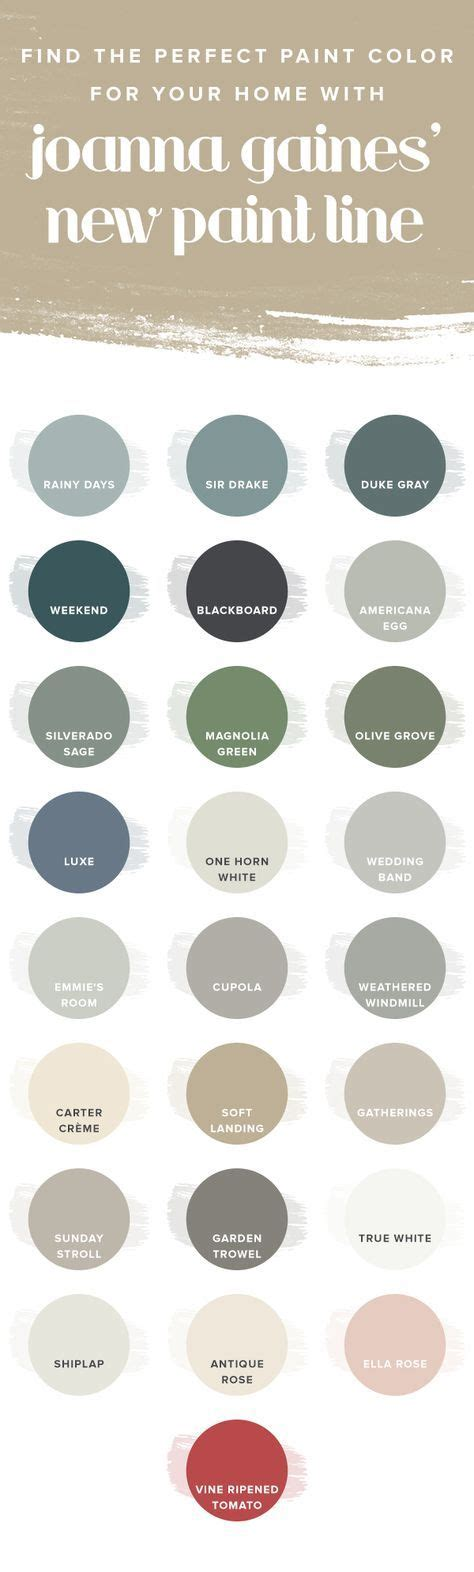 joanna gaines paint color choices fixer joanna gaines news may bring into your home beautiful paint colors